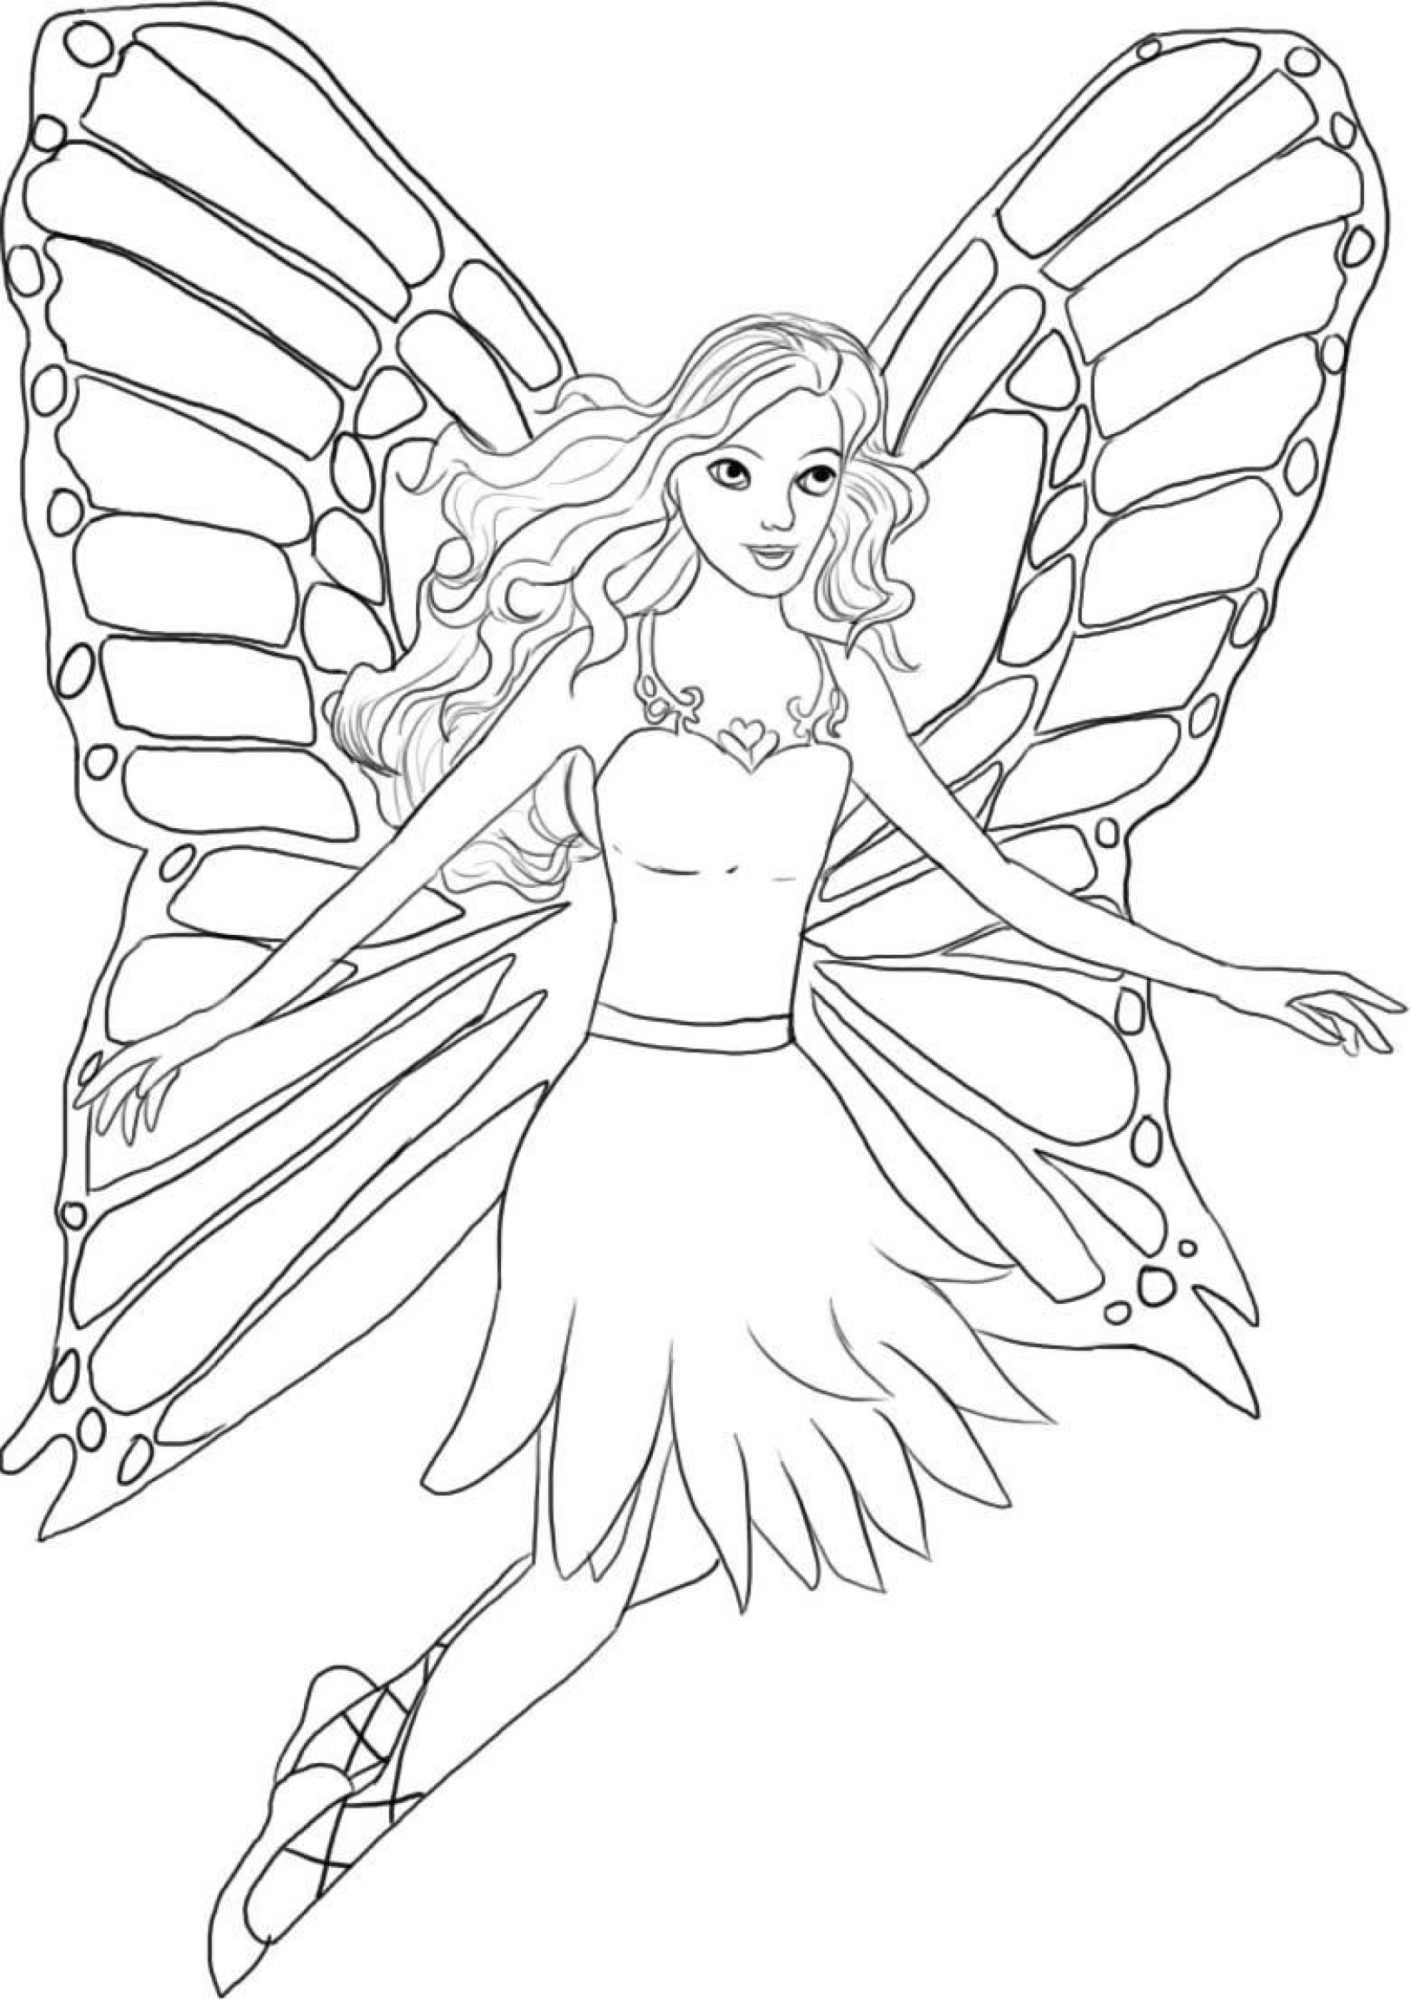 1474838305stella cute winx club furthermore mlp fim dog base  by cerynitian d6ic6ip as well  additionally BTa6G7GT8 together with  further  further my little pony coloring pages princess celestia and luna besides Barbie 2BPrincipessa 2BRock 2B07 additionally  likewise butter besides Tooth Fairy Princess. on my little pony coloring pages princess